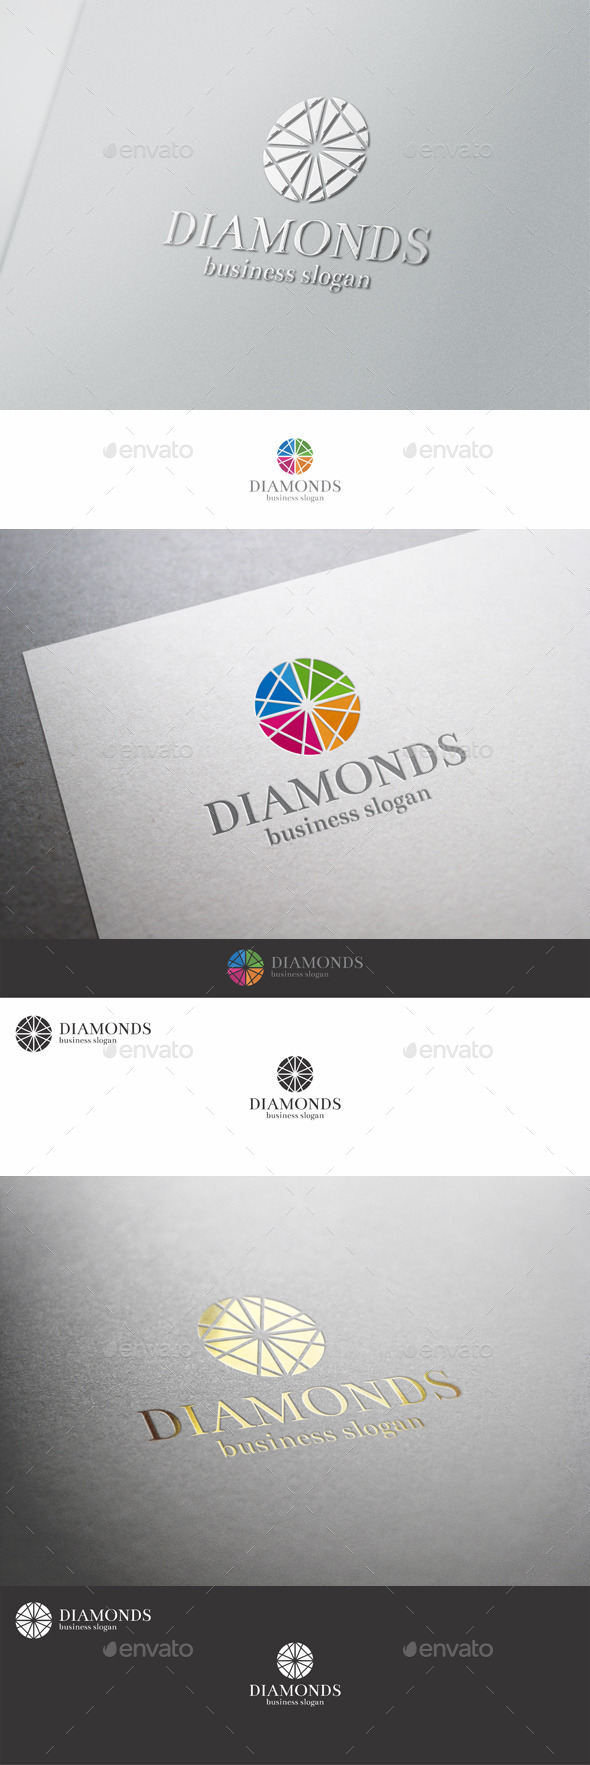 Diamonds Logo Template - Vector Abstract